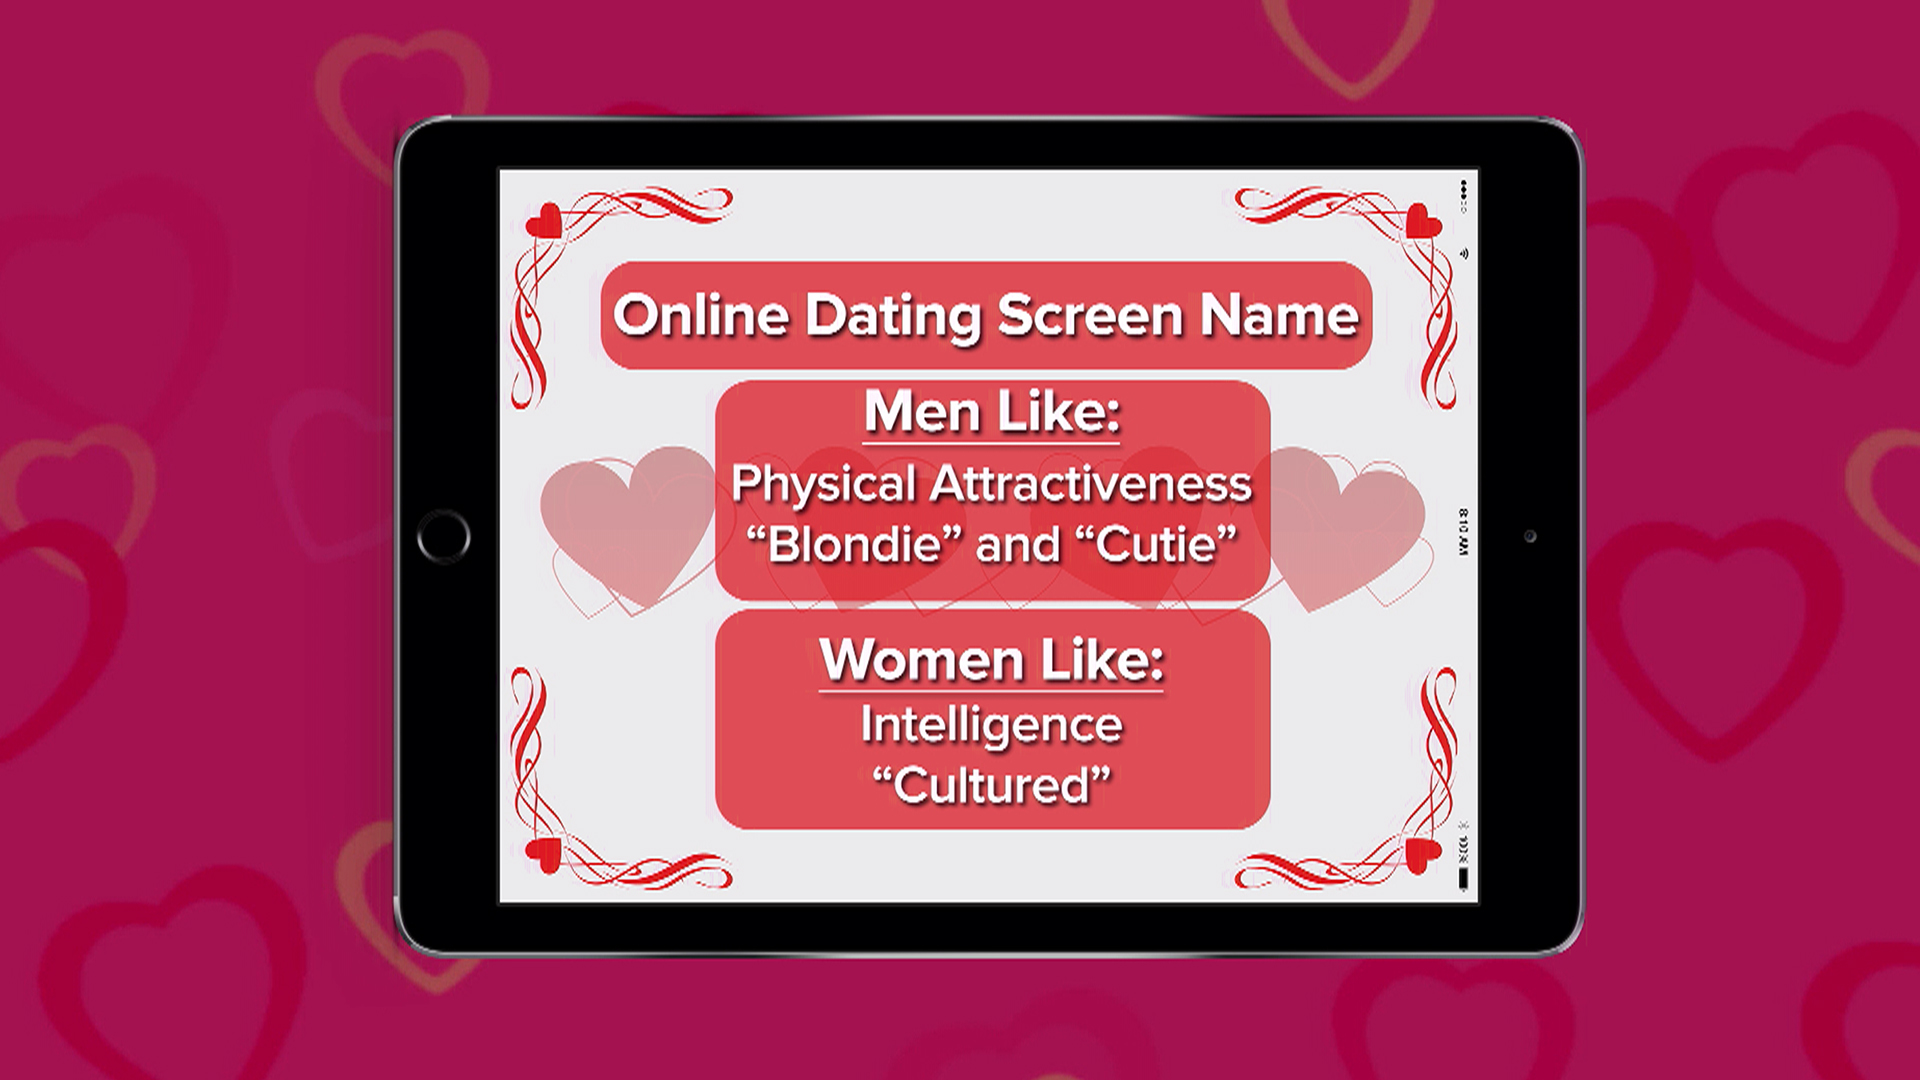 What dating apps to avoid